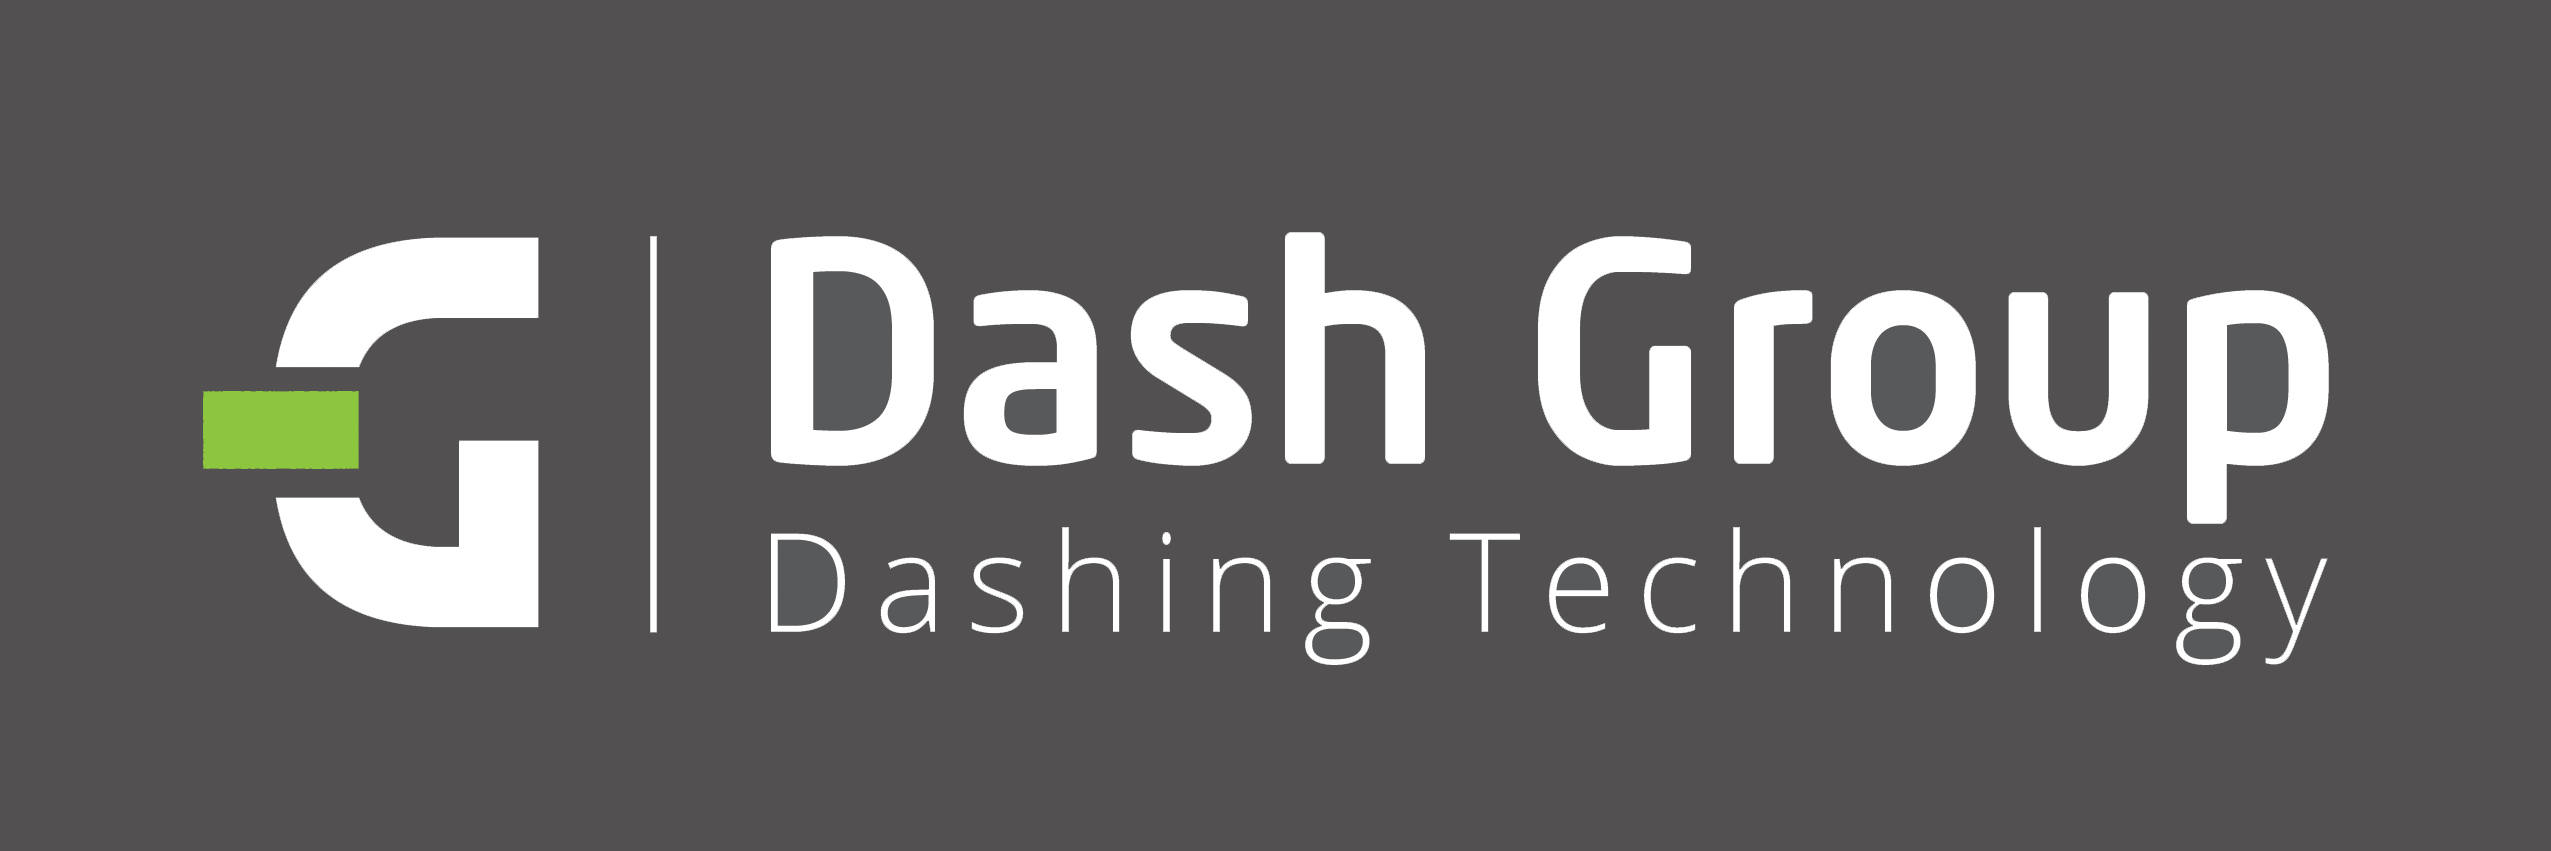 Dashgroup